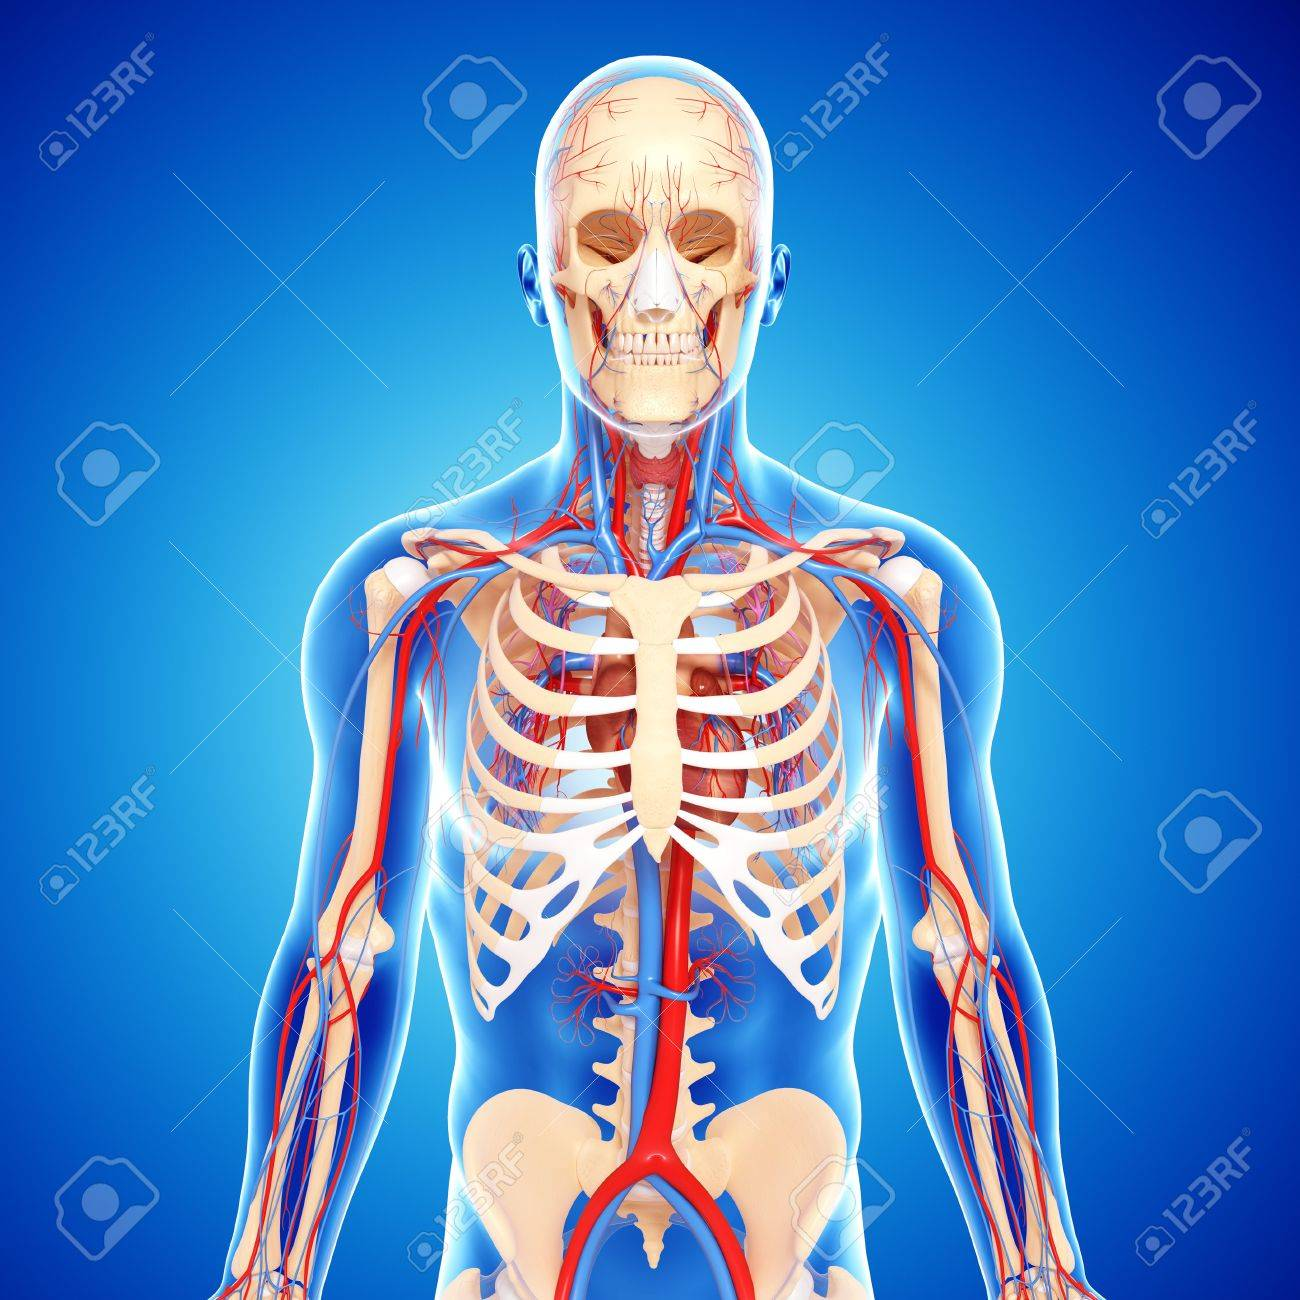 Upper Body Anatomy,artwork Stock Photo, Picture And Royalty Free ...